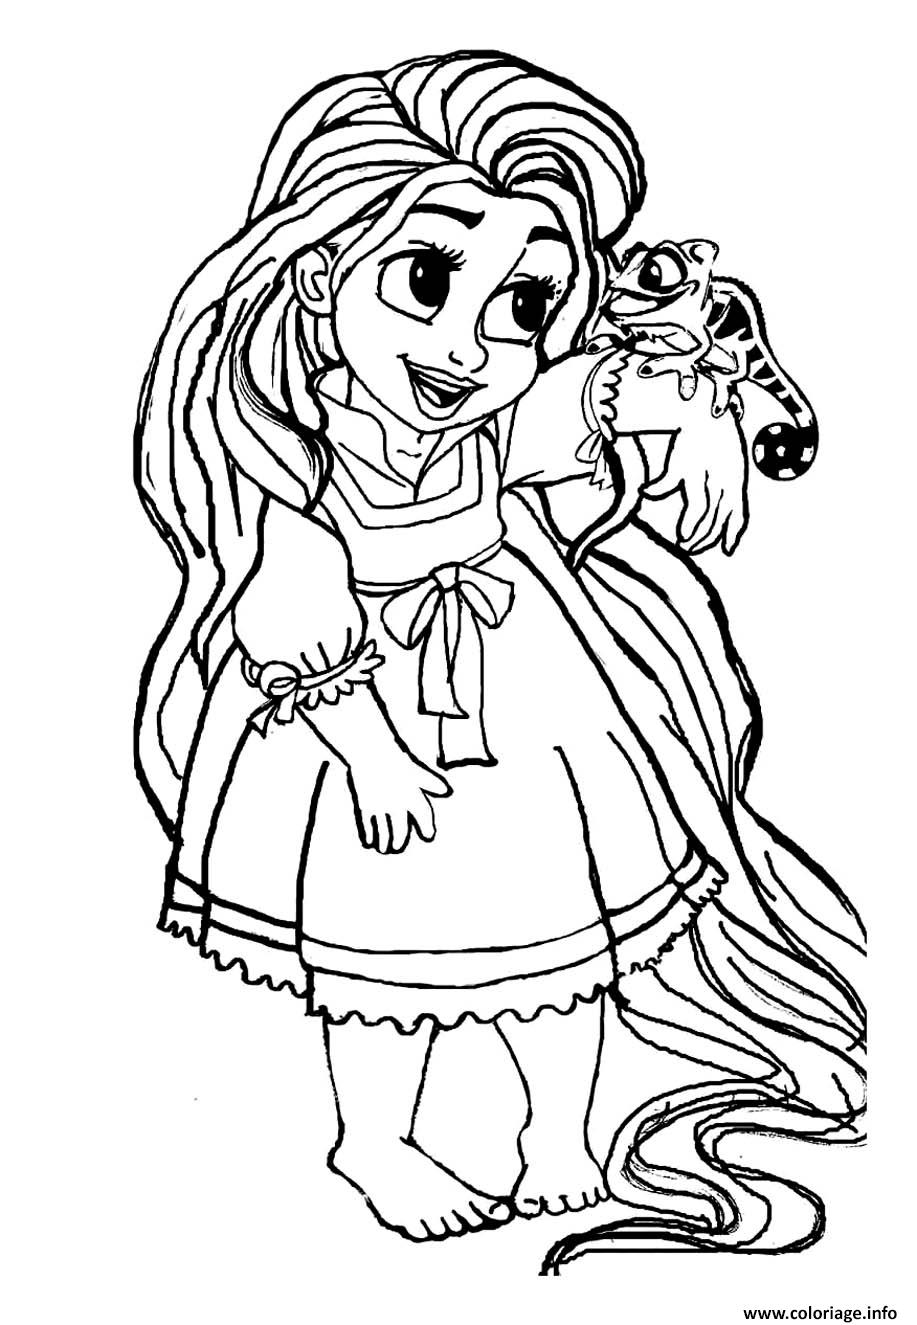 Coloriage bebe raiponce princesse disney cute dessin - Dessiner des princesses ...